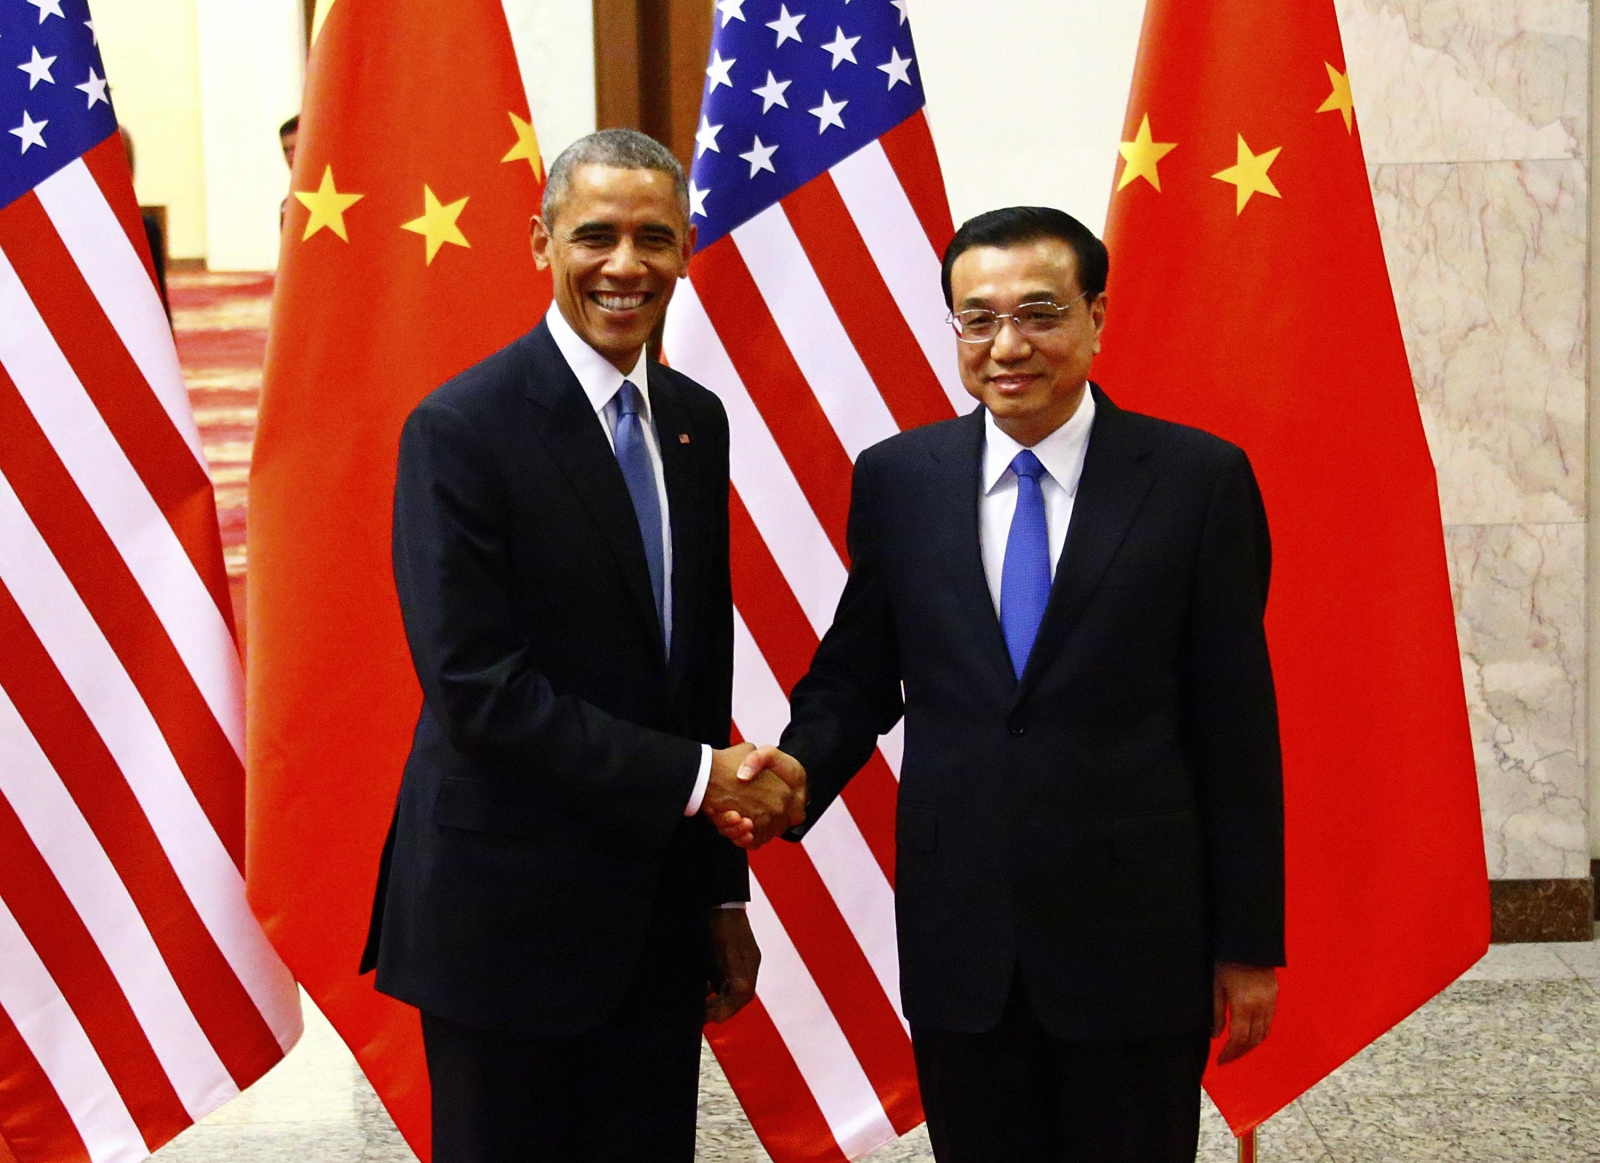 Barack Obama and China's Xi Jinping Agree Landmark Cuts to Carbon Emissions